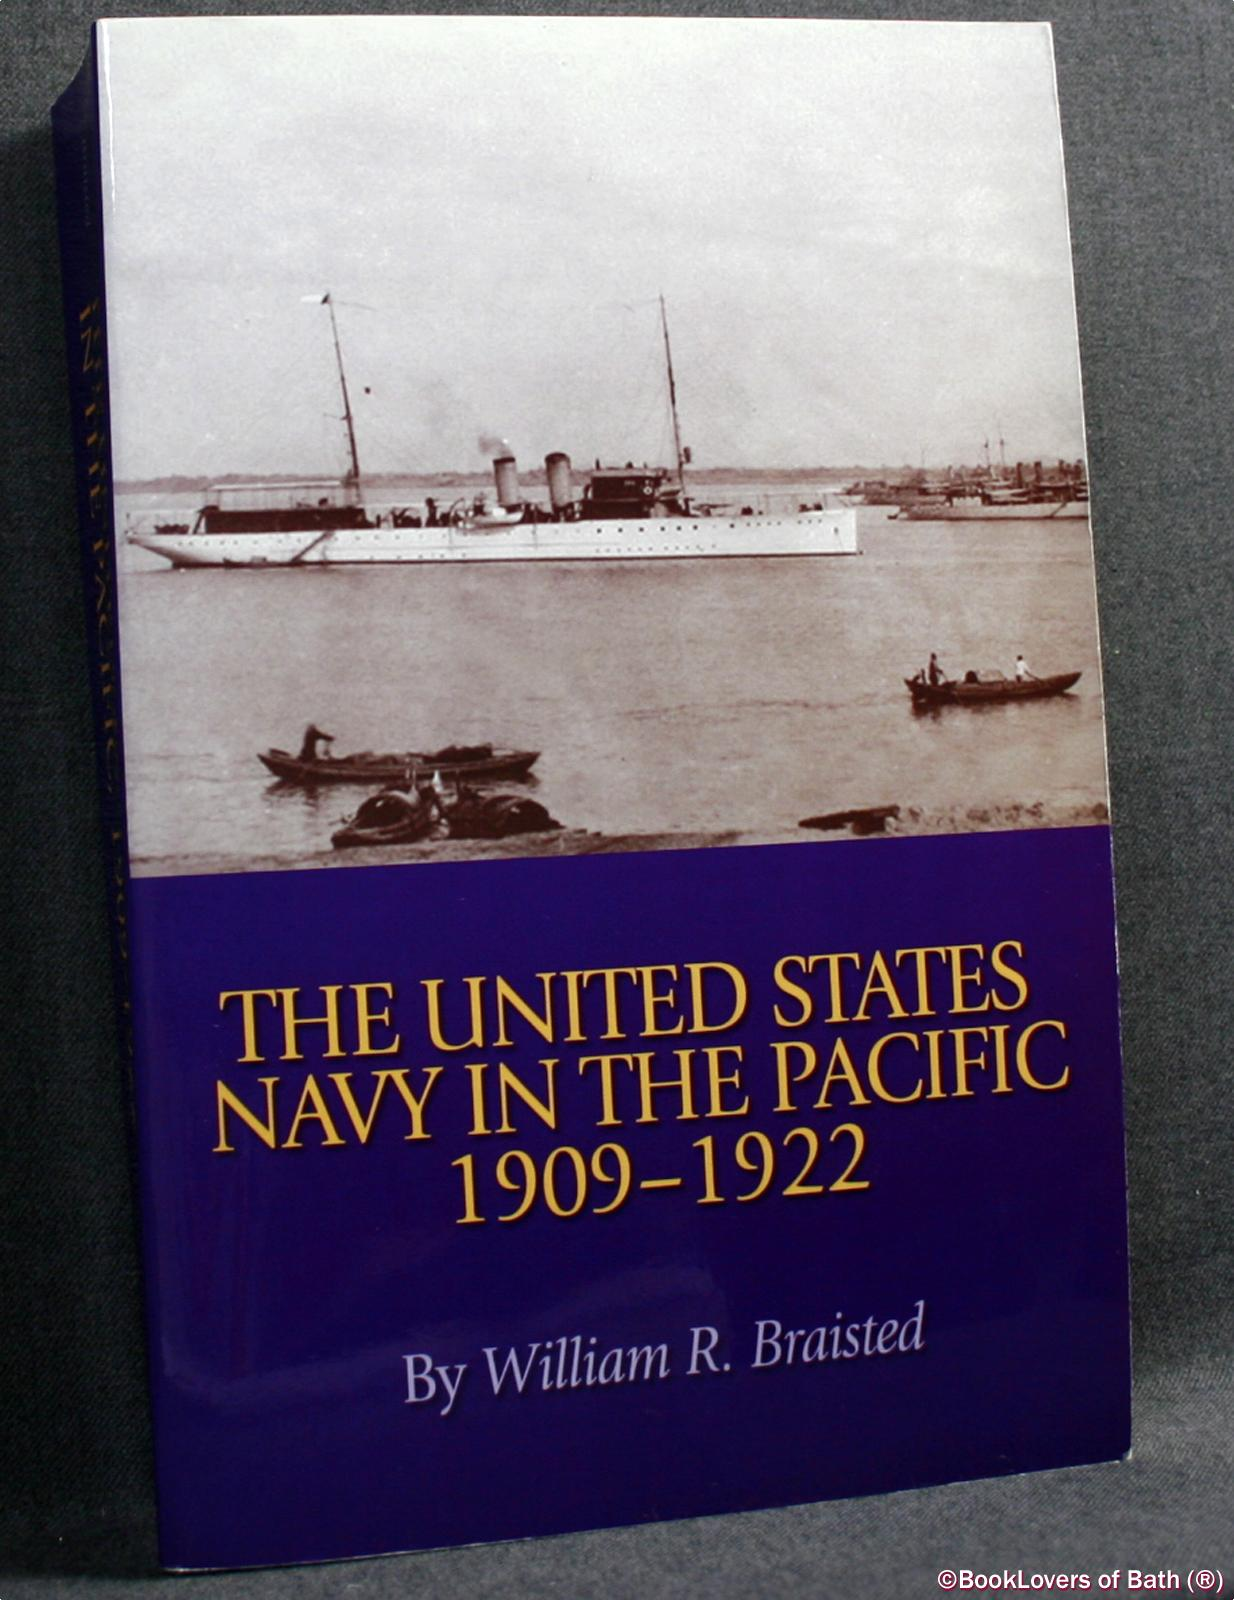 The United States Navy in the Pacific, 1909-1922 - William Reynolds Braisted